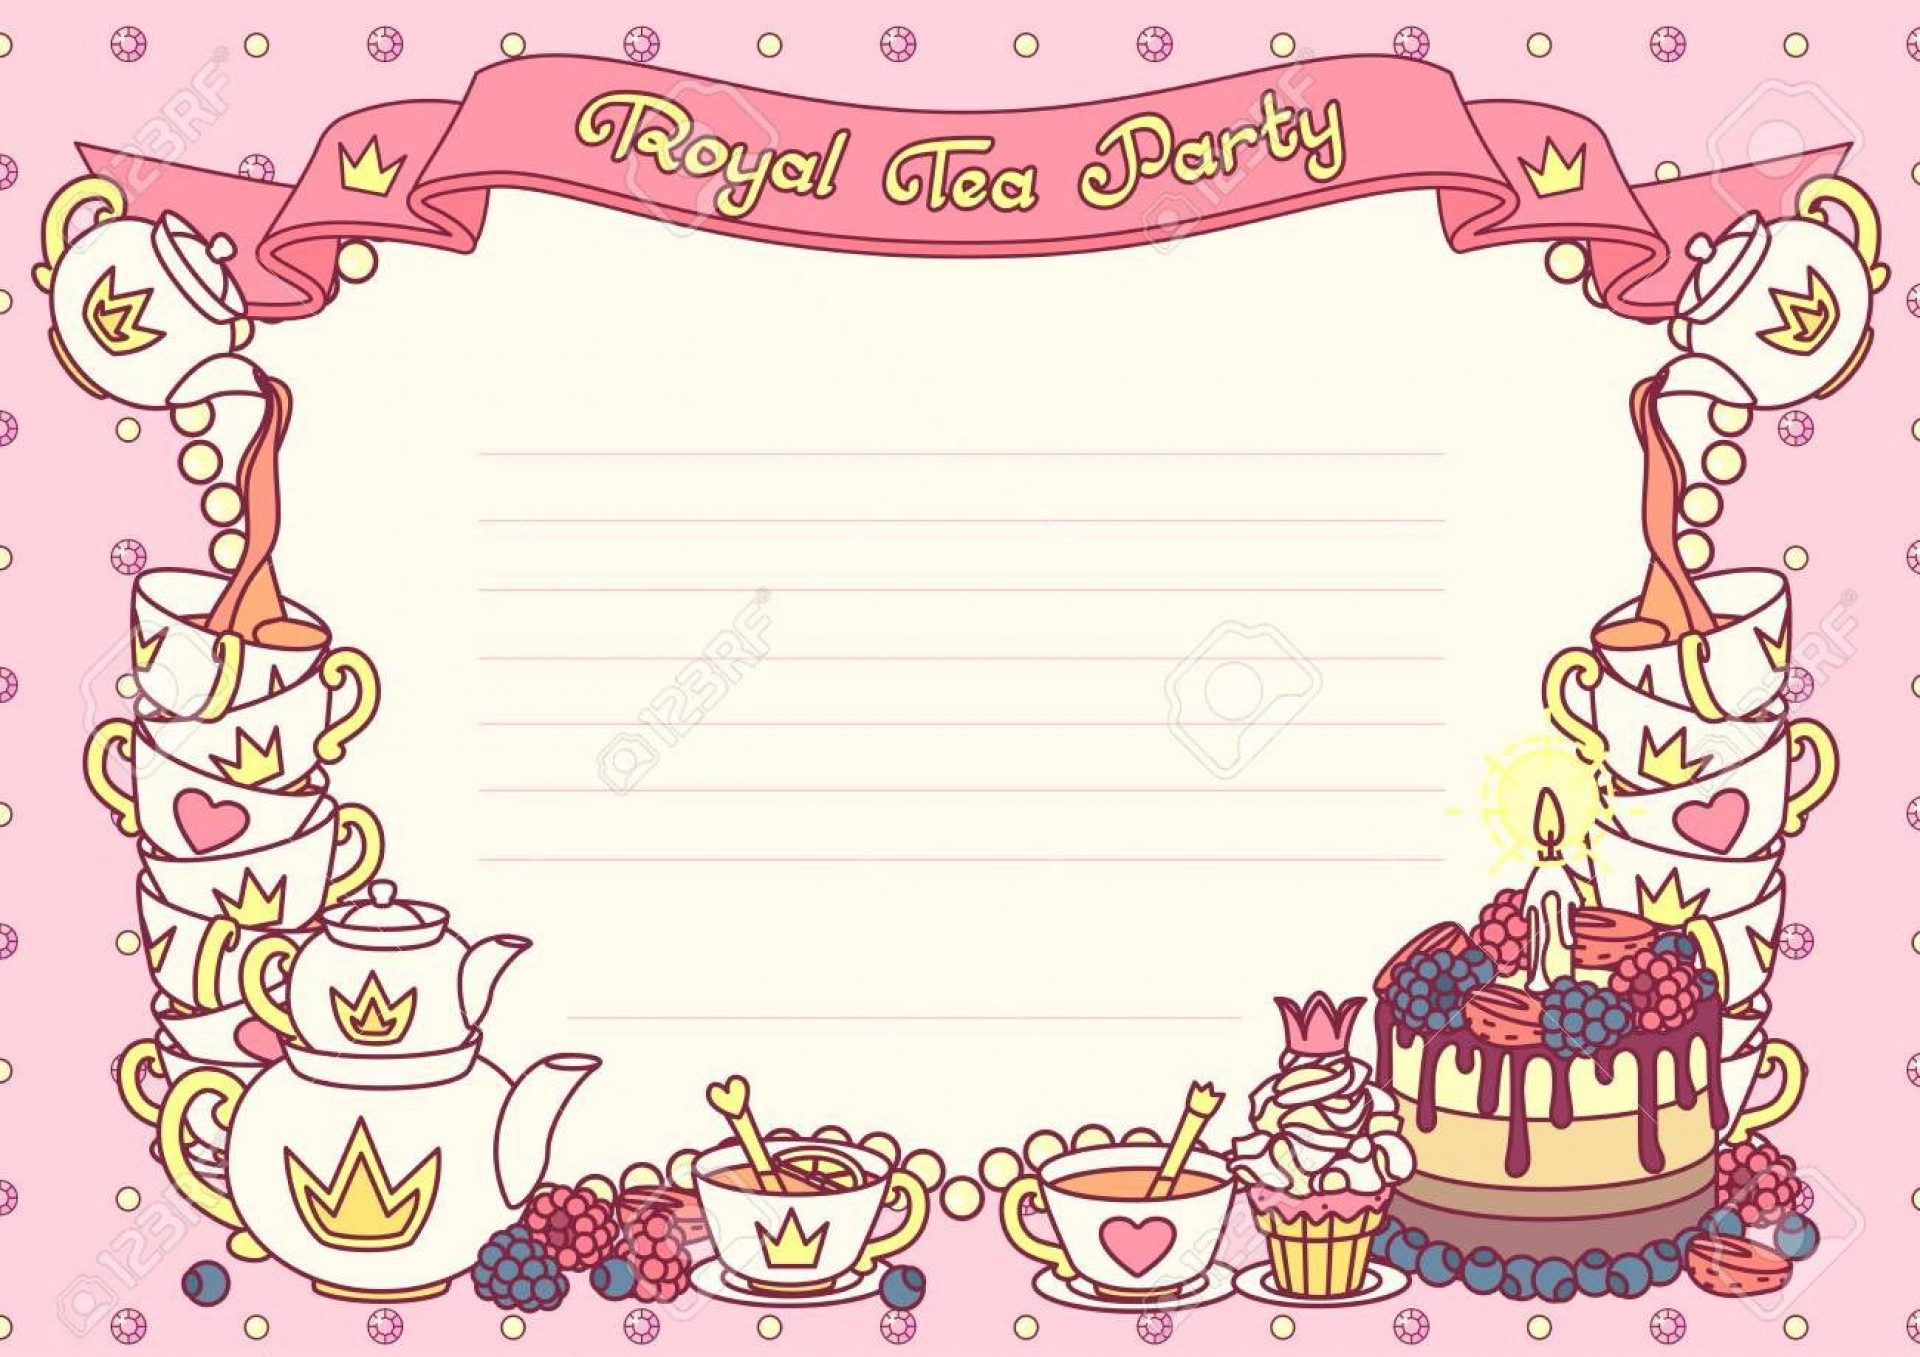 006 Impressive Tea Party Invitation Template Free Sample  Vintage Princes Printable1920